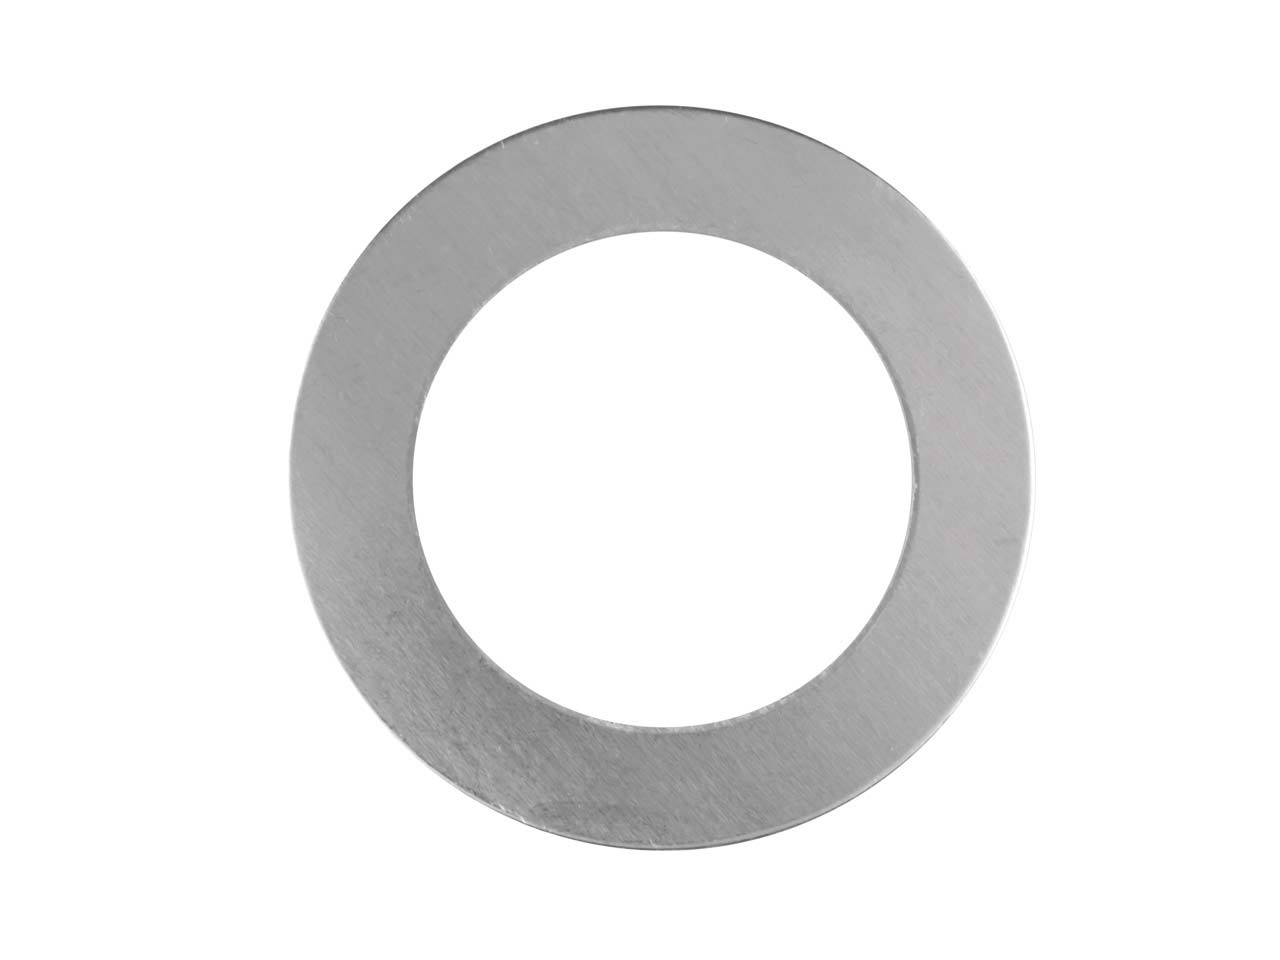 Impressart Aluminium Blanks Large  Washer 38mm X 0.8mm, Pack of 7